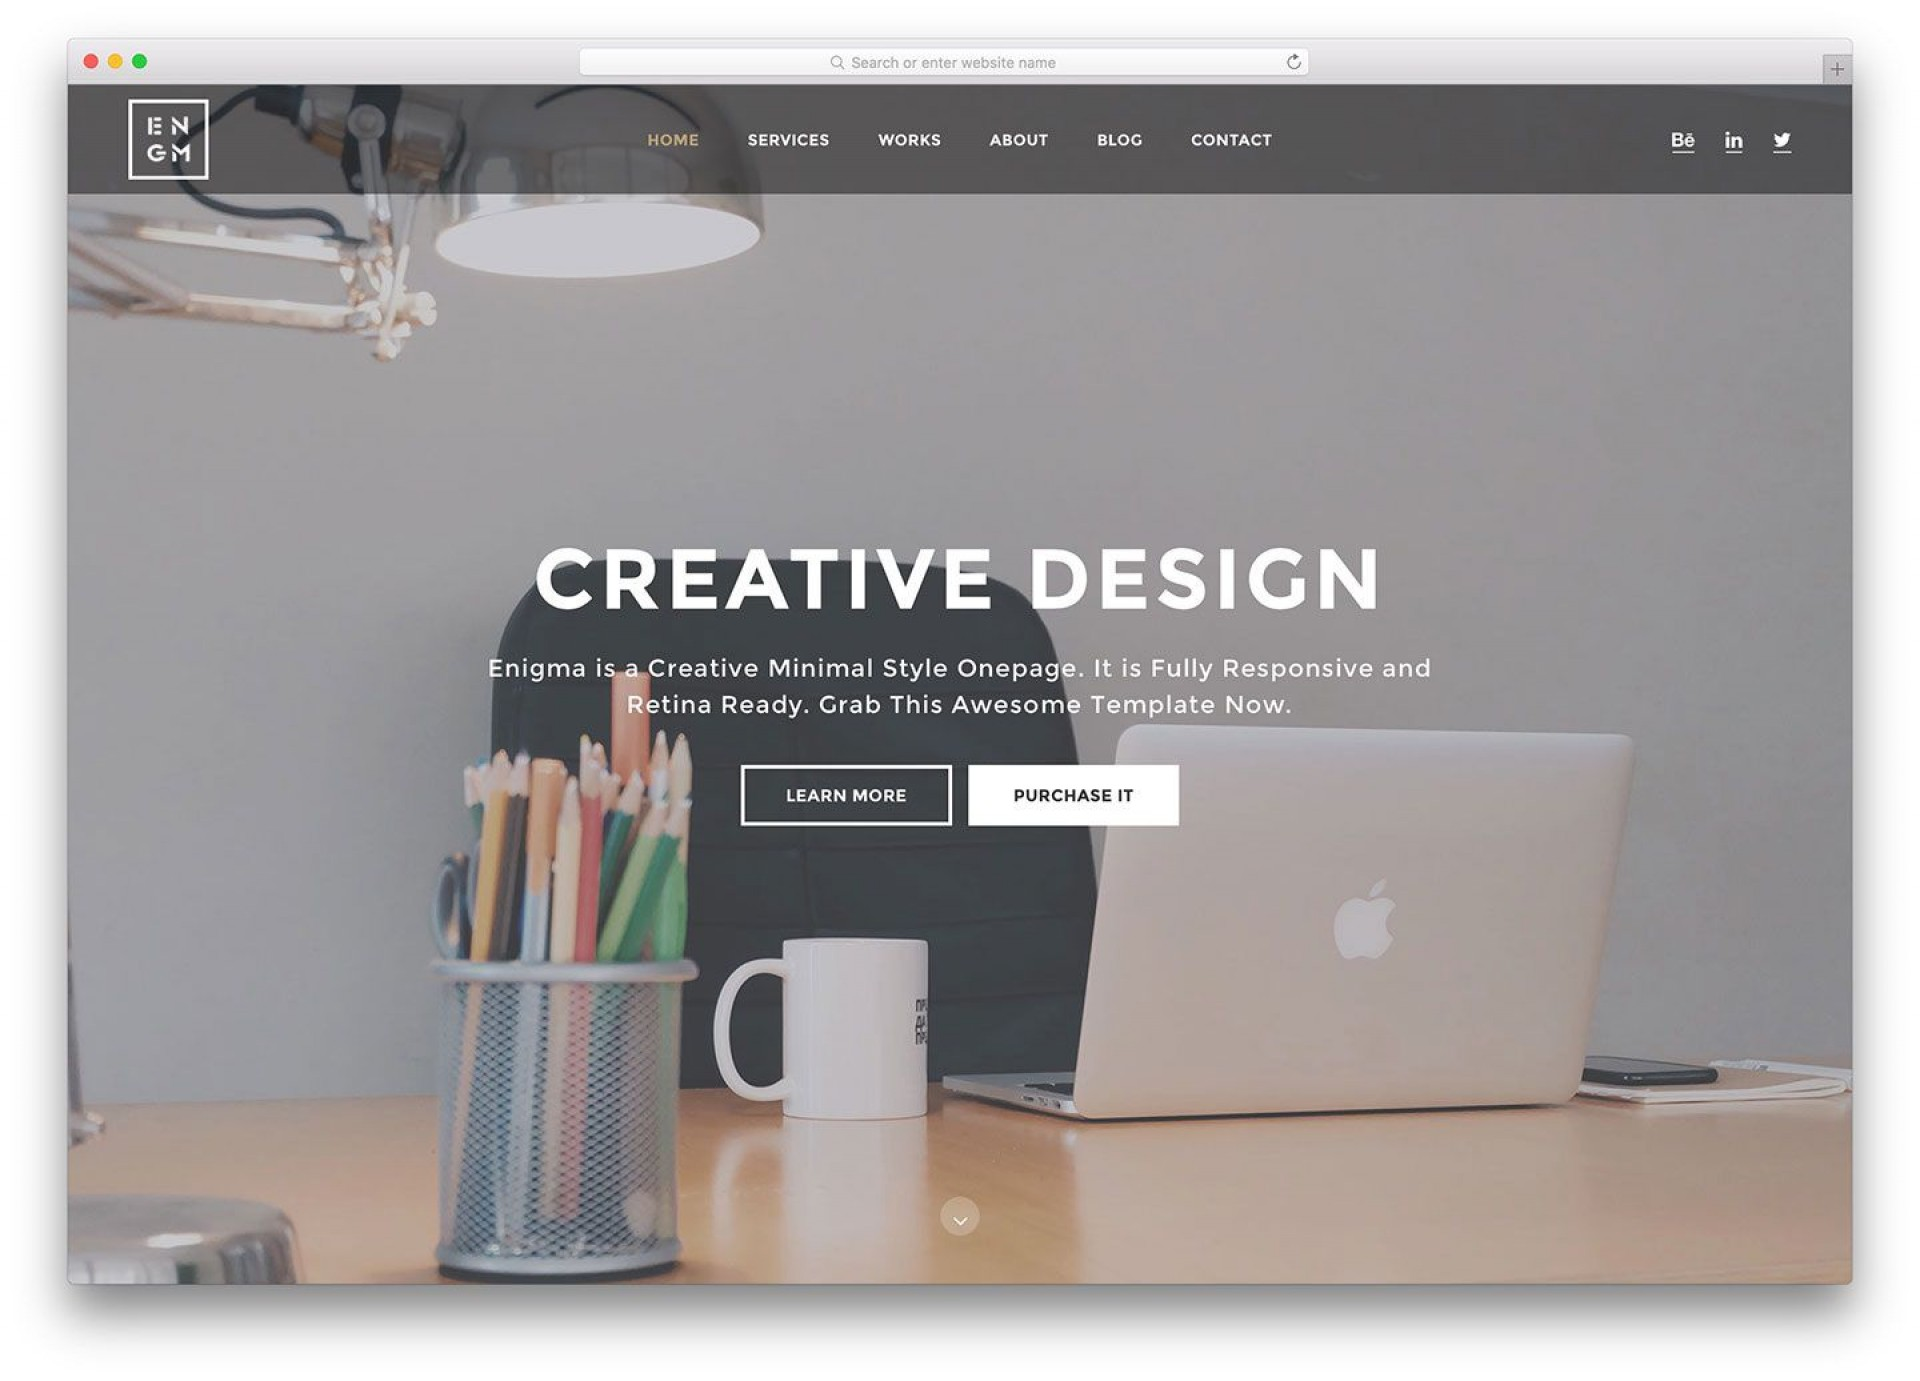 006 Imposing Simple Web Page Template Free Download High Resolution  One Website Html With Cs1920